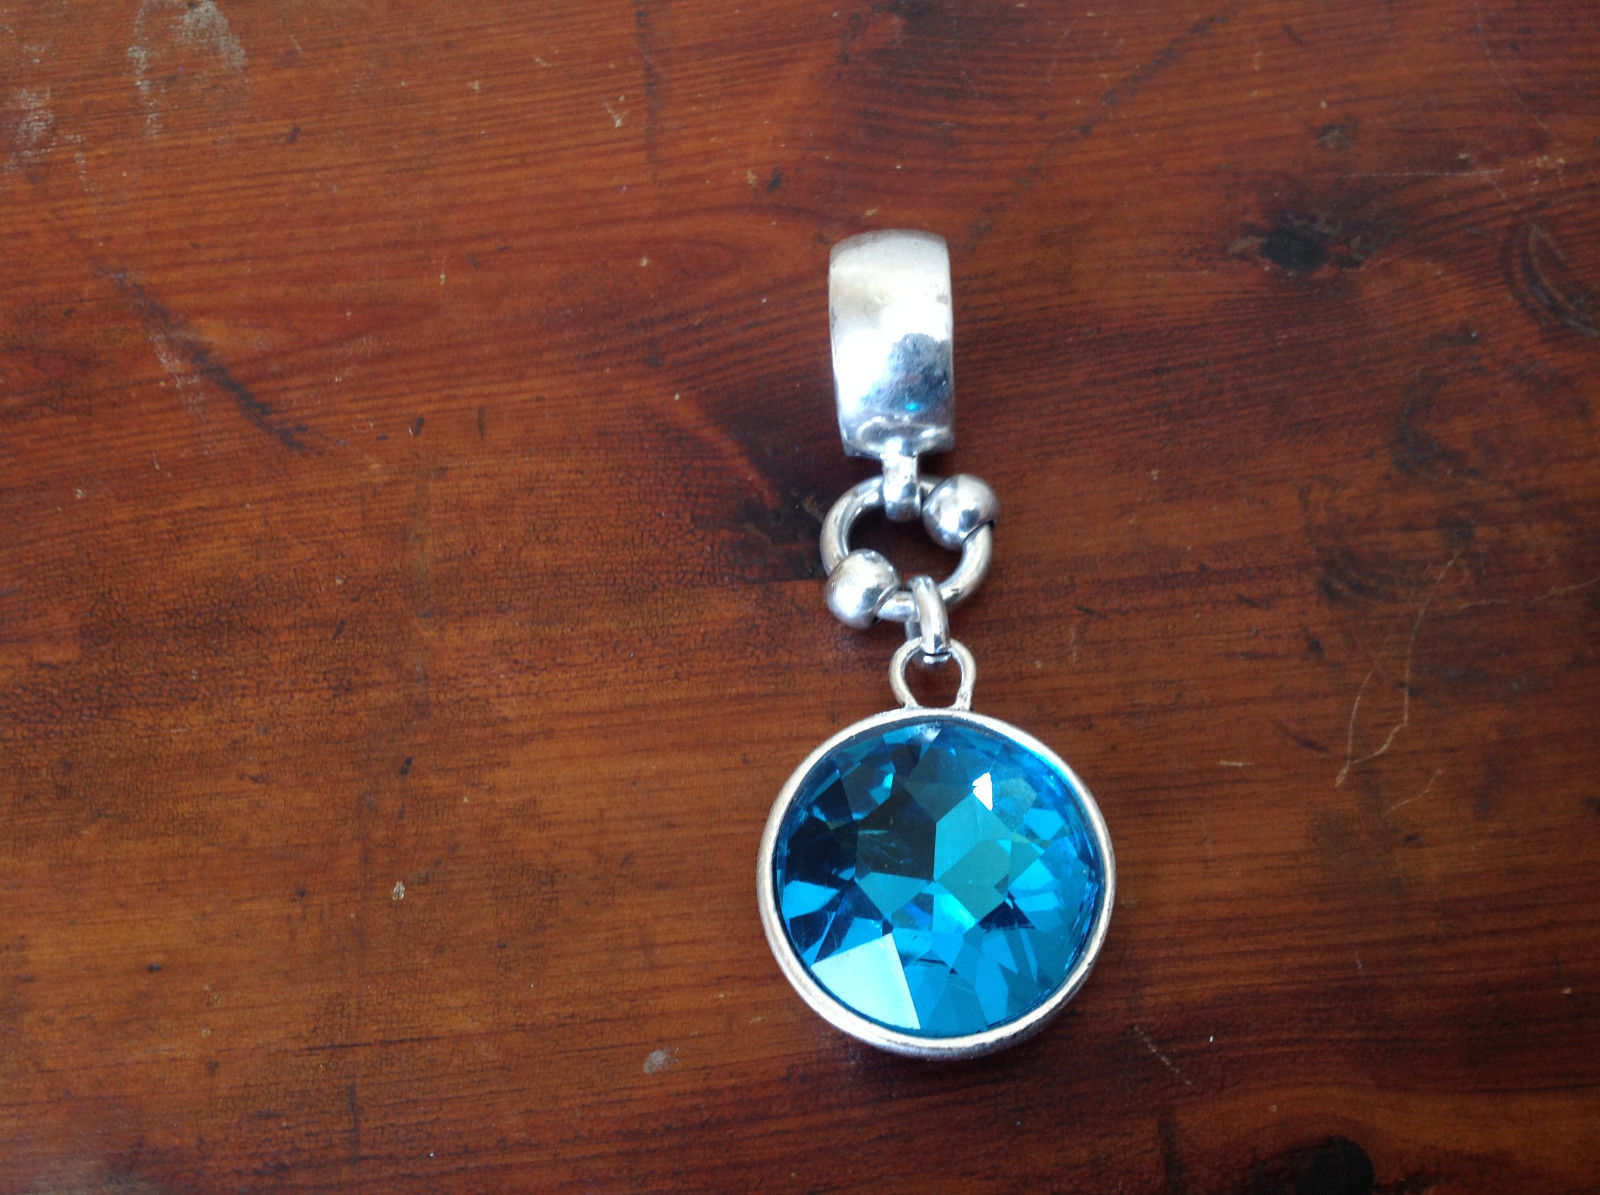 Dazzling Large Light Blue Crystal Silver Tone Scarf Pendant by Magic Scarf